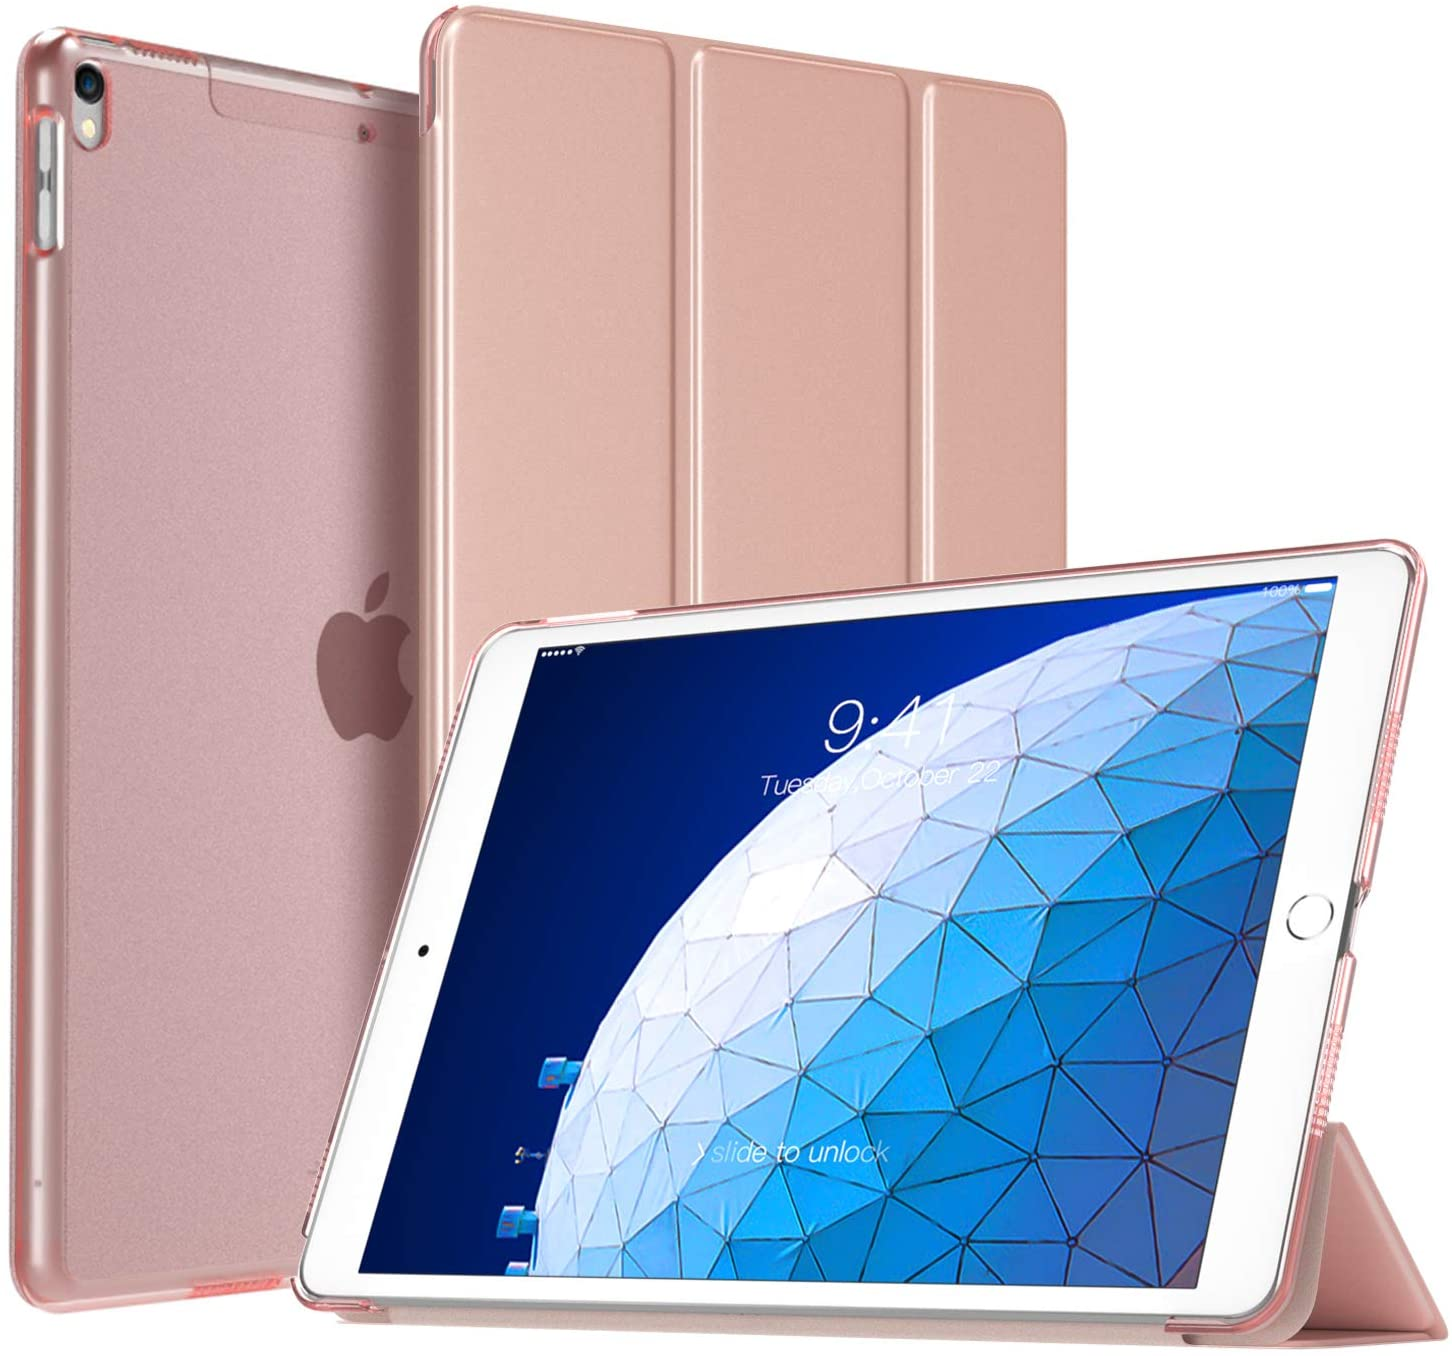 TiMOVO Cover Compatible for New iPad Air 2019 Case, Trifold Slim Shell Stand Cover Translucent Frosted Hard Back Protector with Auto Wake/Sleep Fit iPad Air 3 10.5